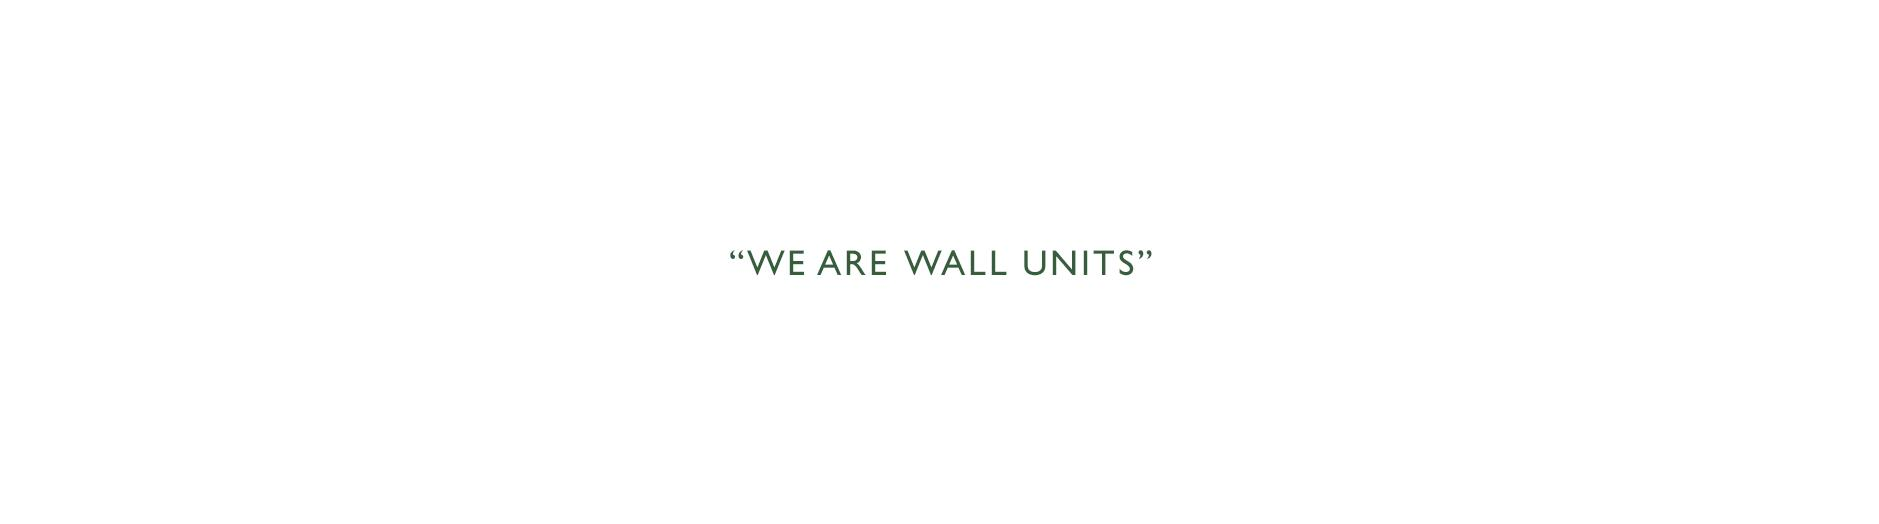 we-are-wall-units